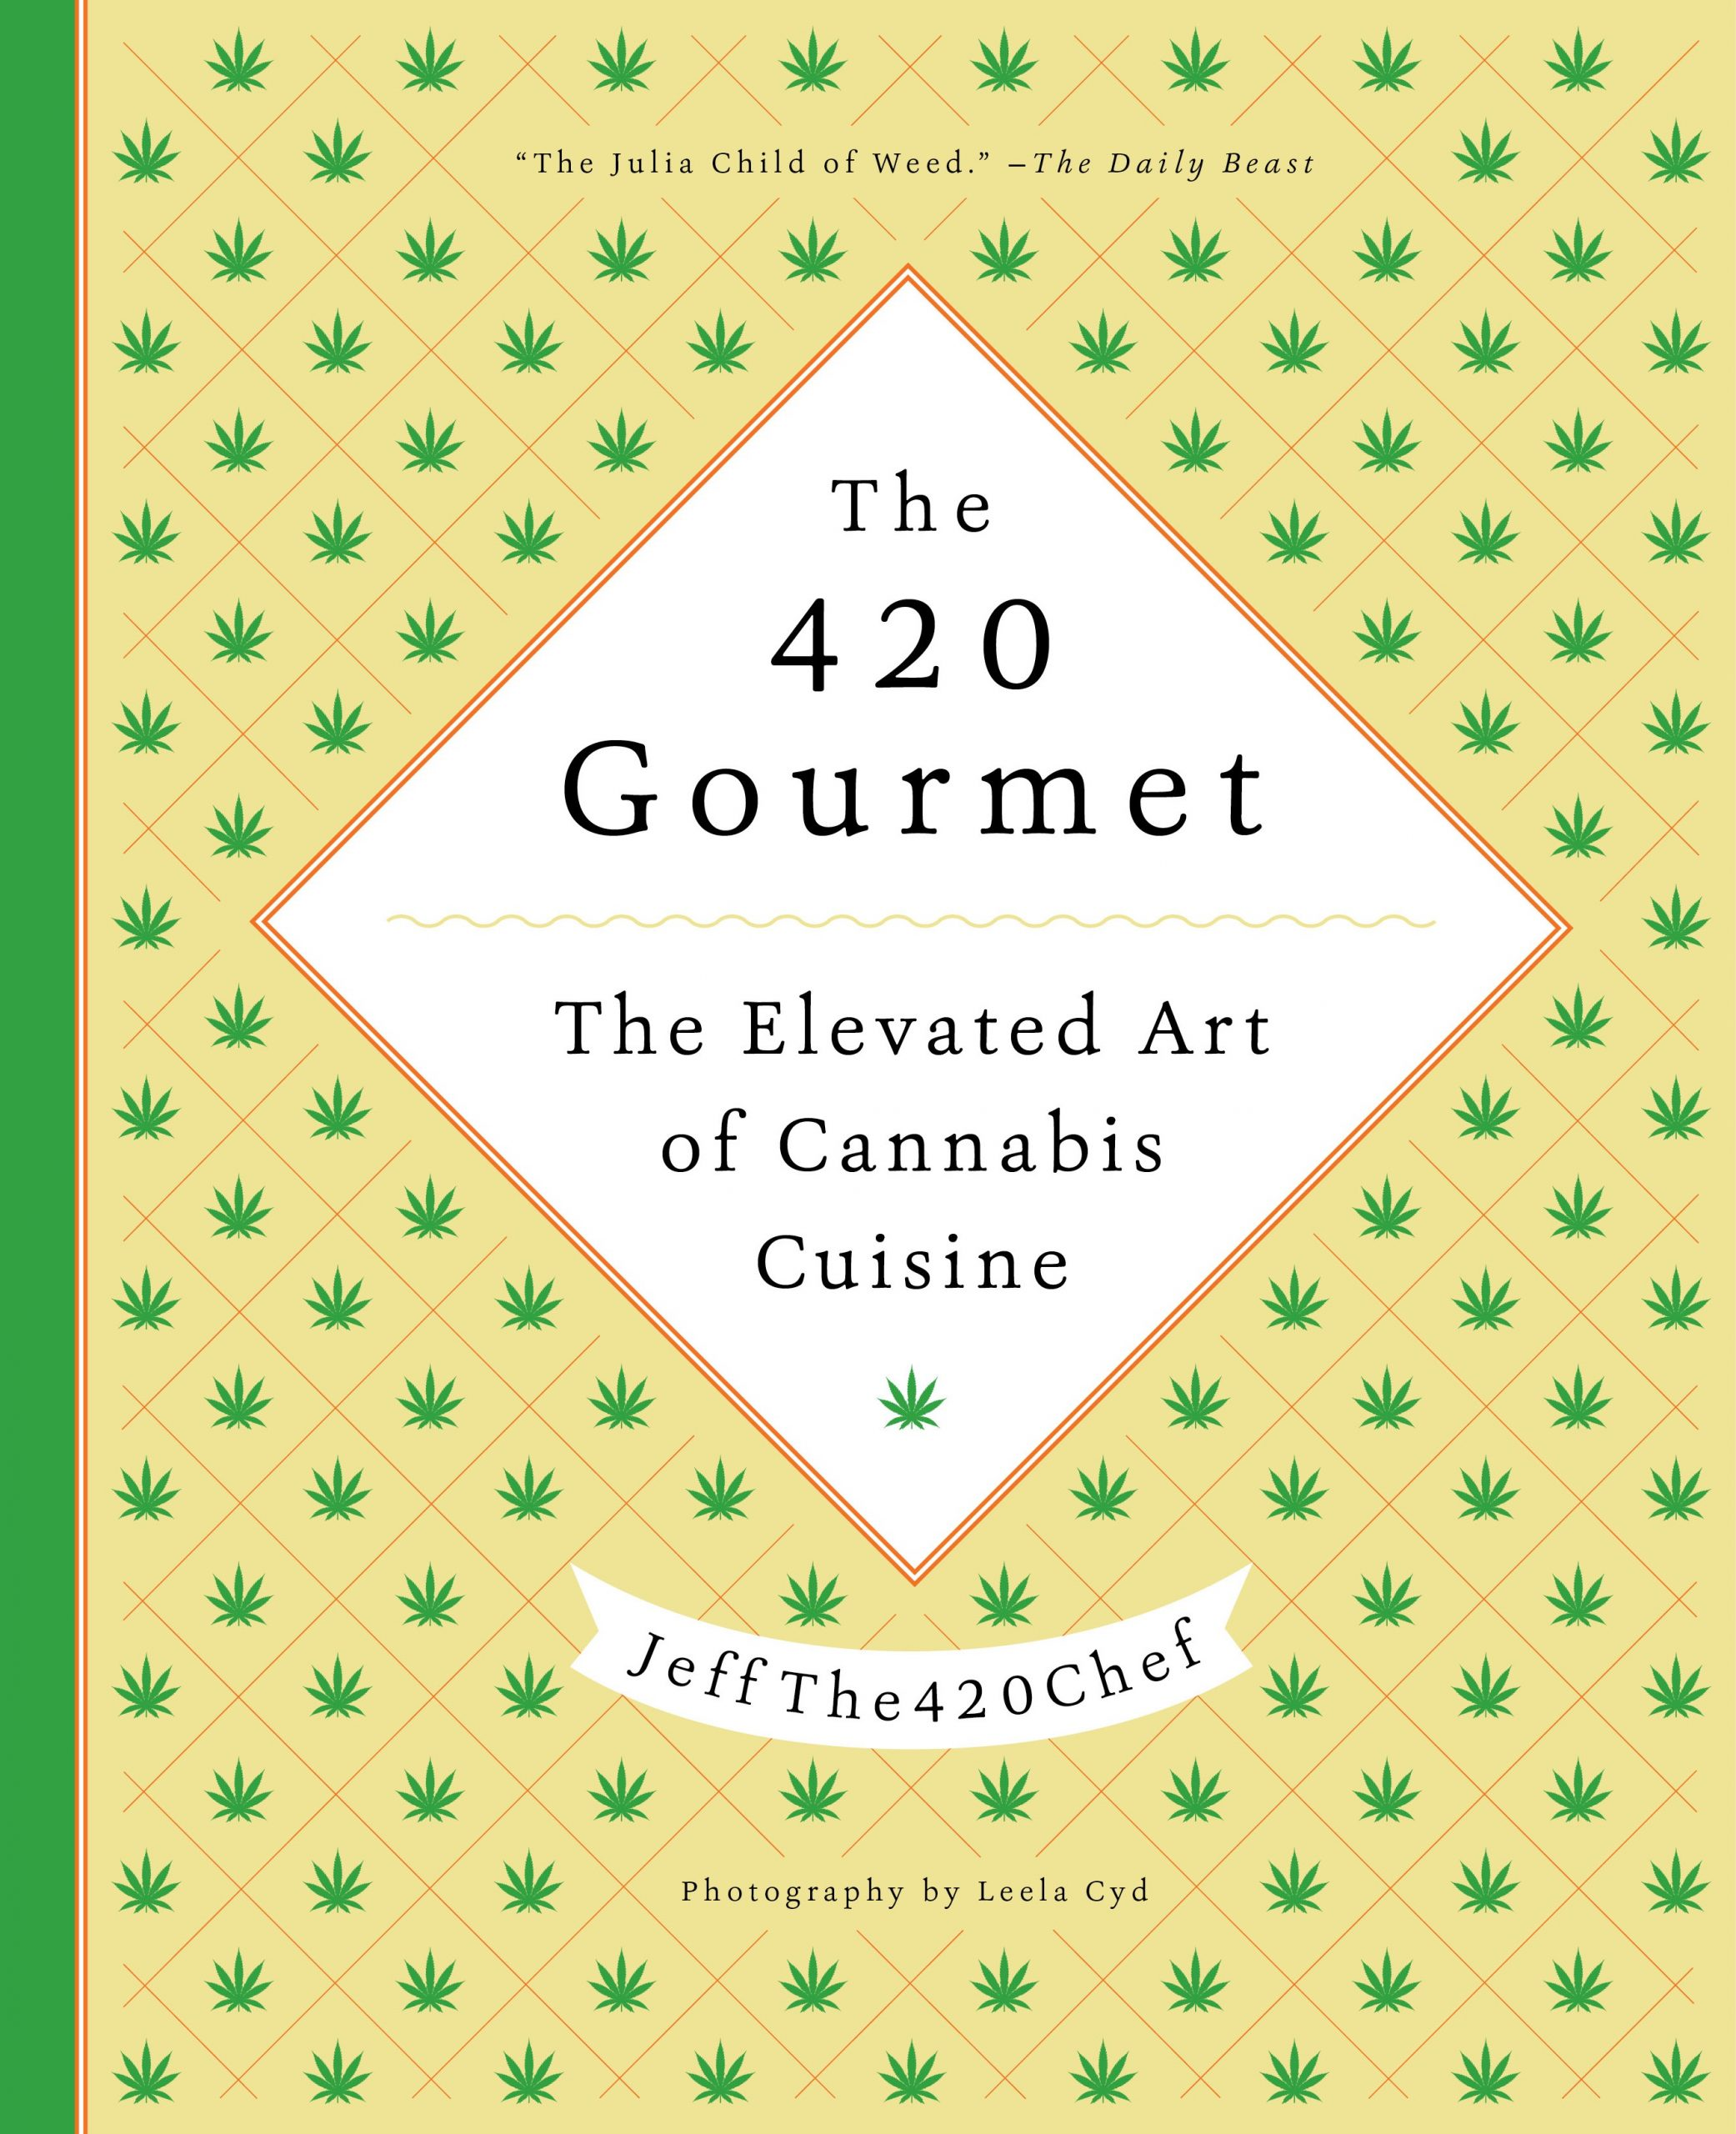 CANNABIS RECIPES with JEFFTHE420CHEF